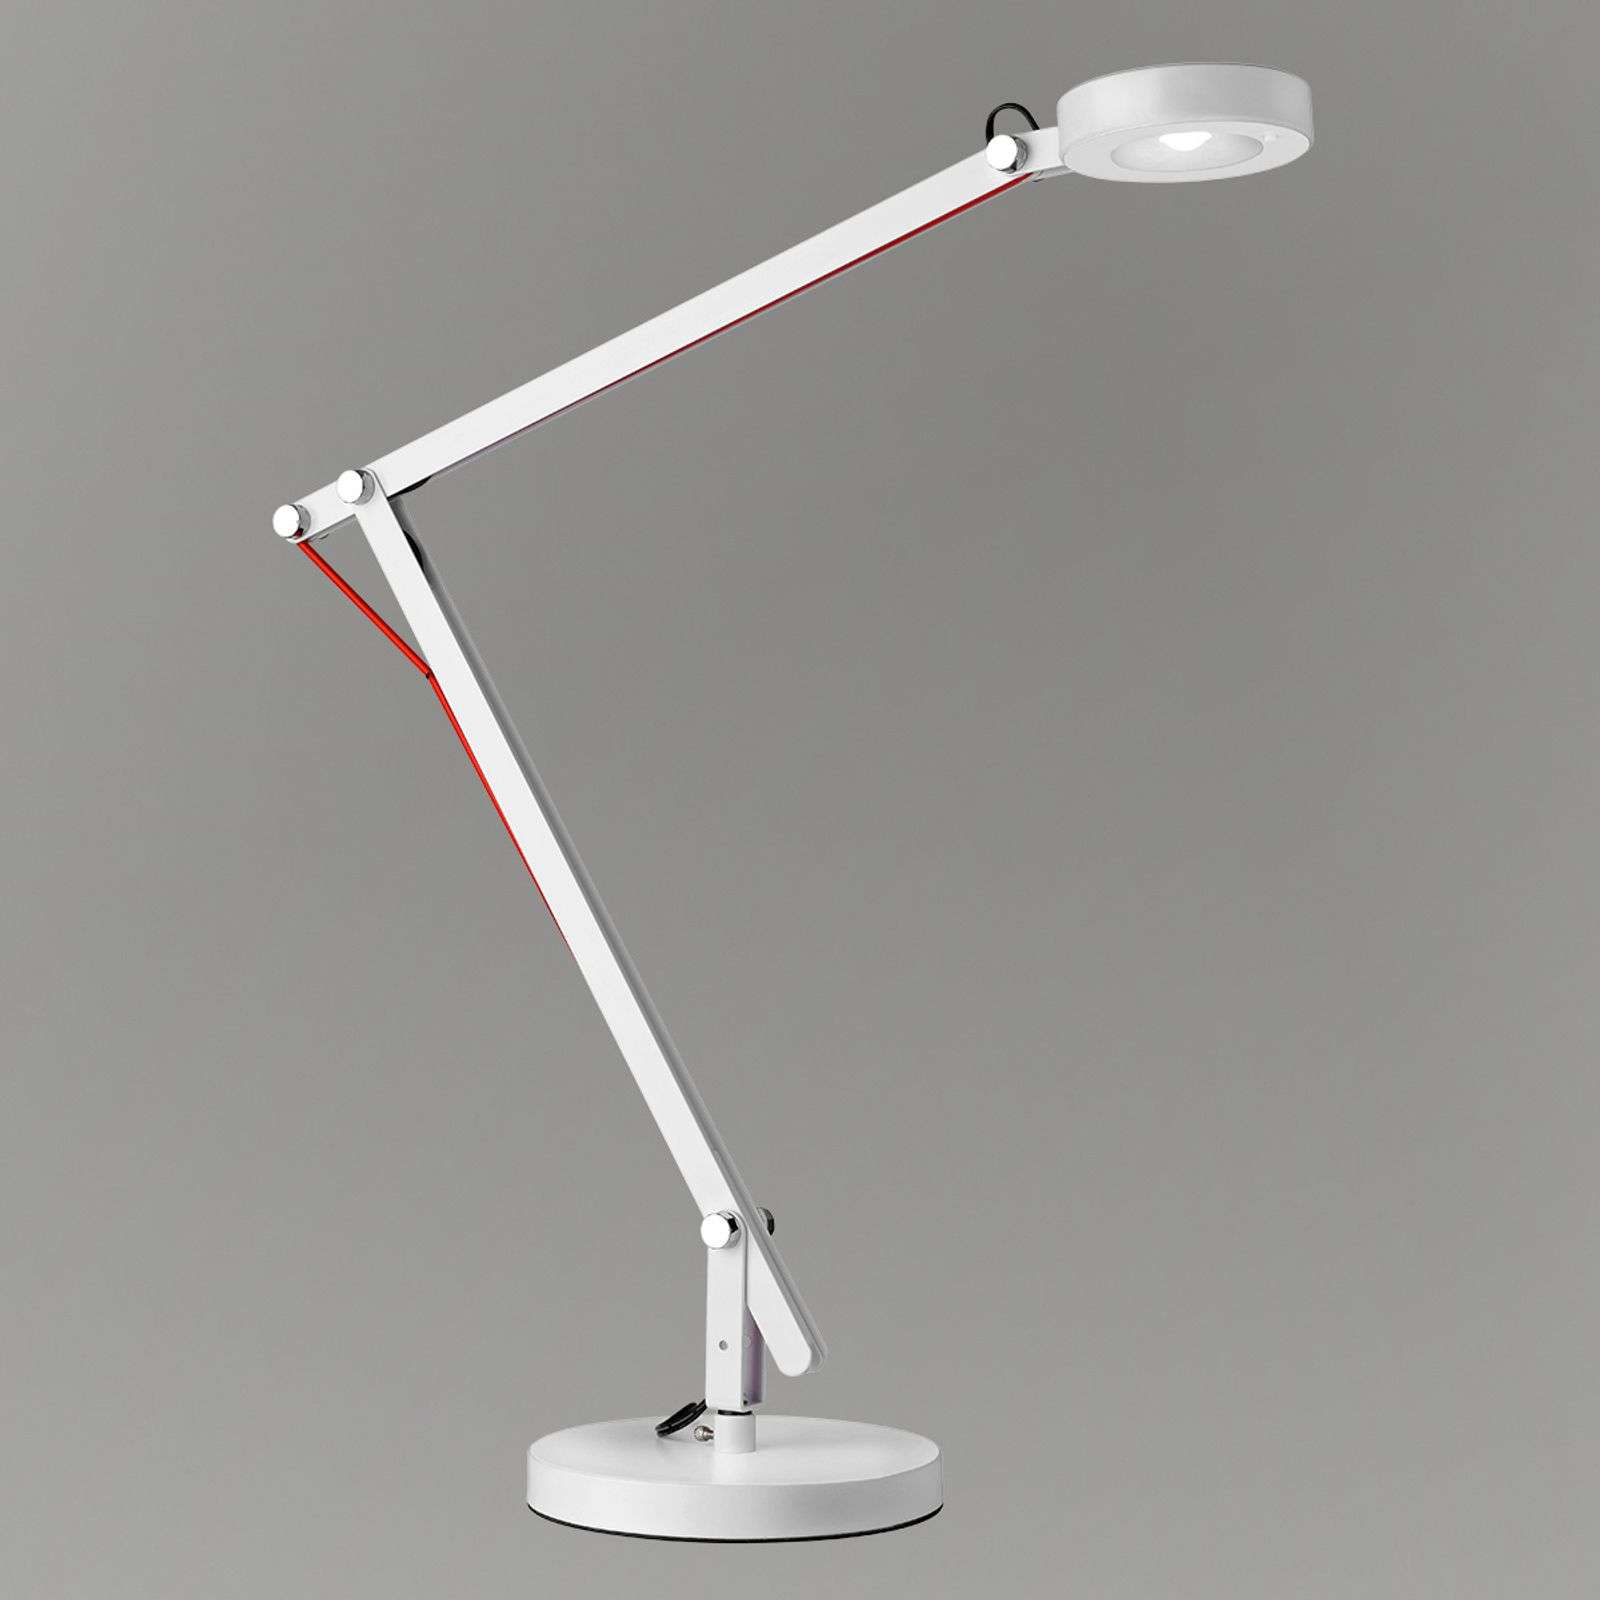 Lampada da scrivania a LED Stina innovativa